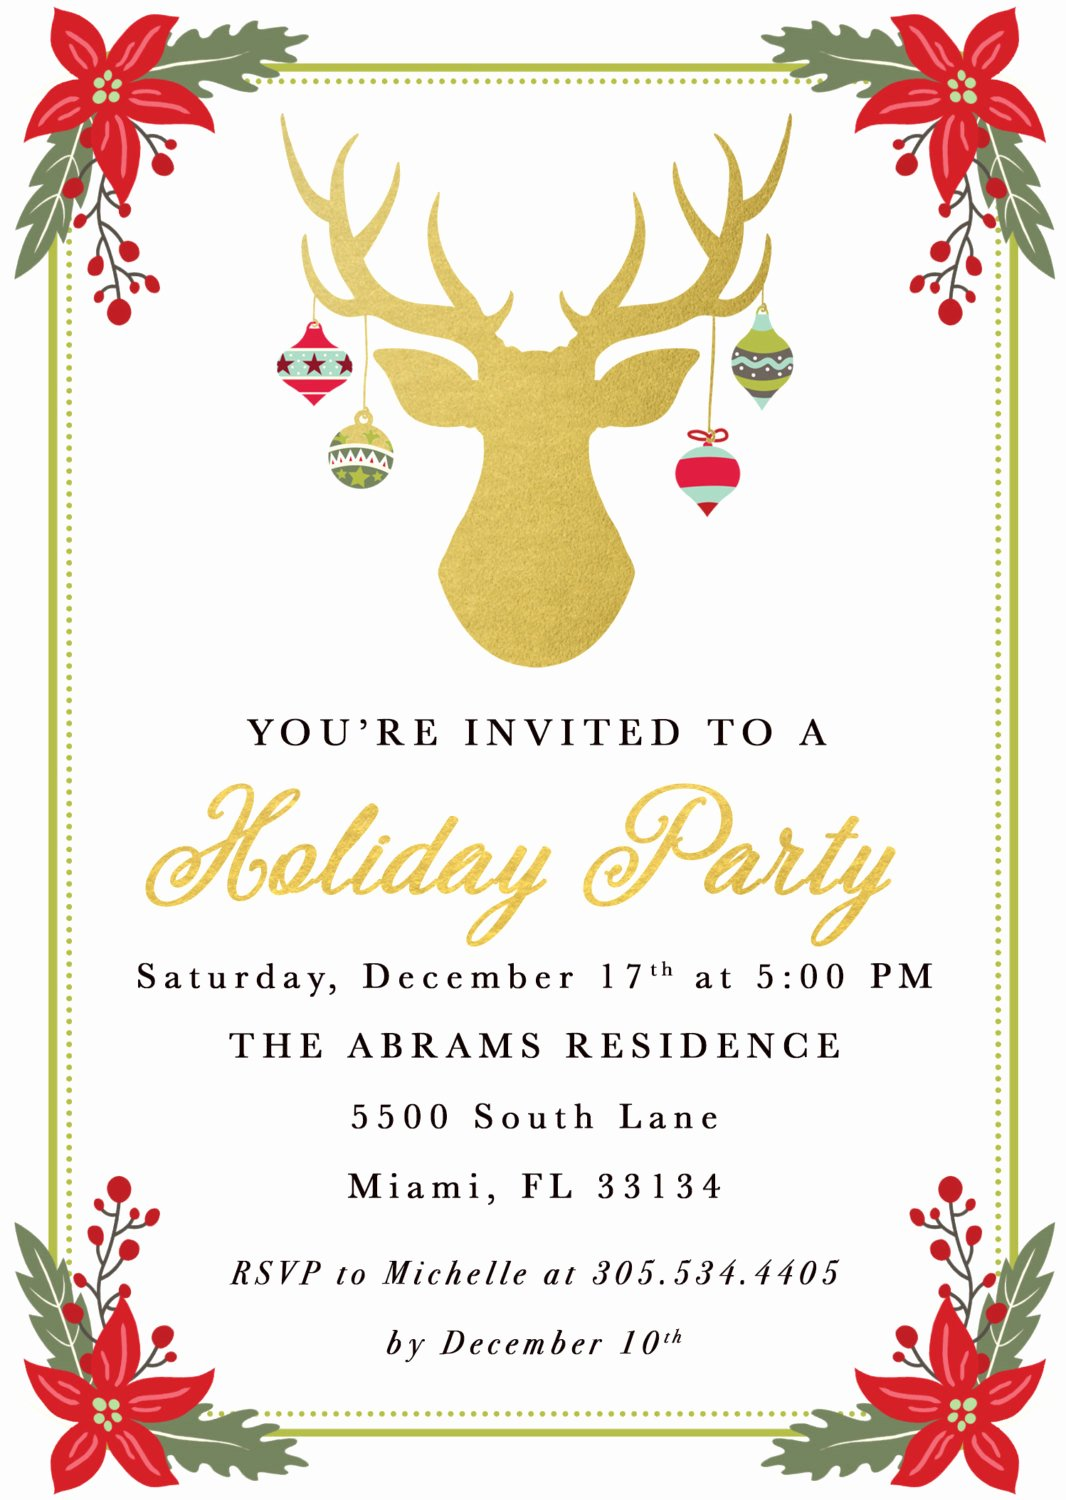 Free Christmas Party Invitations Template Luxury Christmas Party Invitation Reindeer Christmas Party